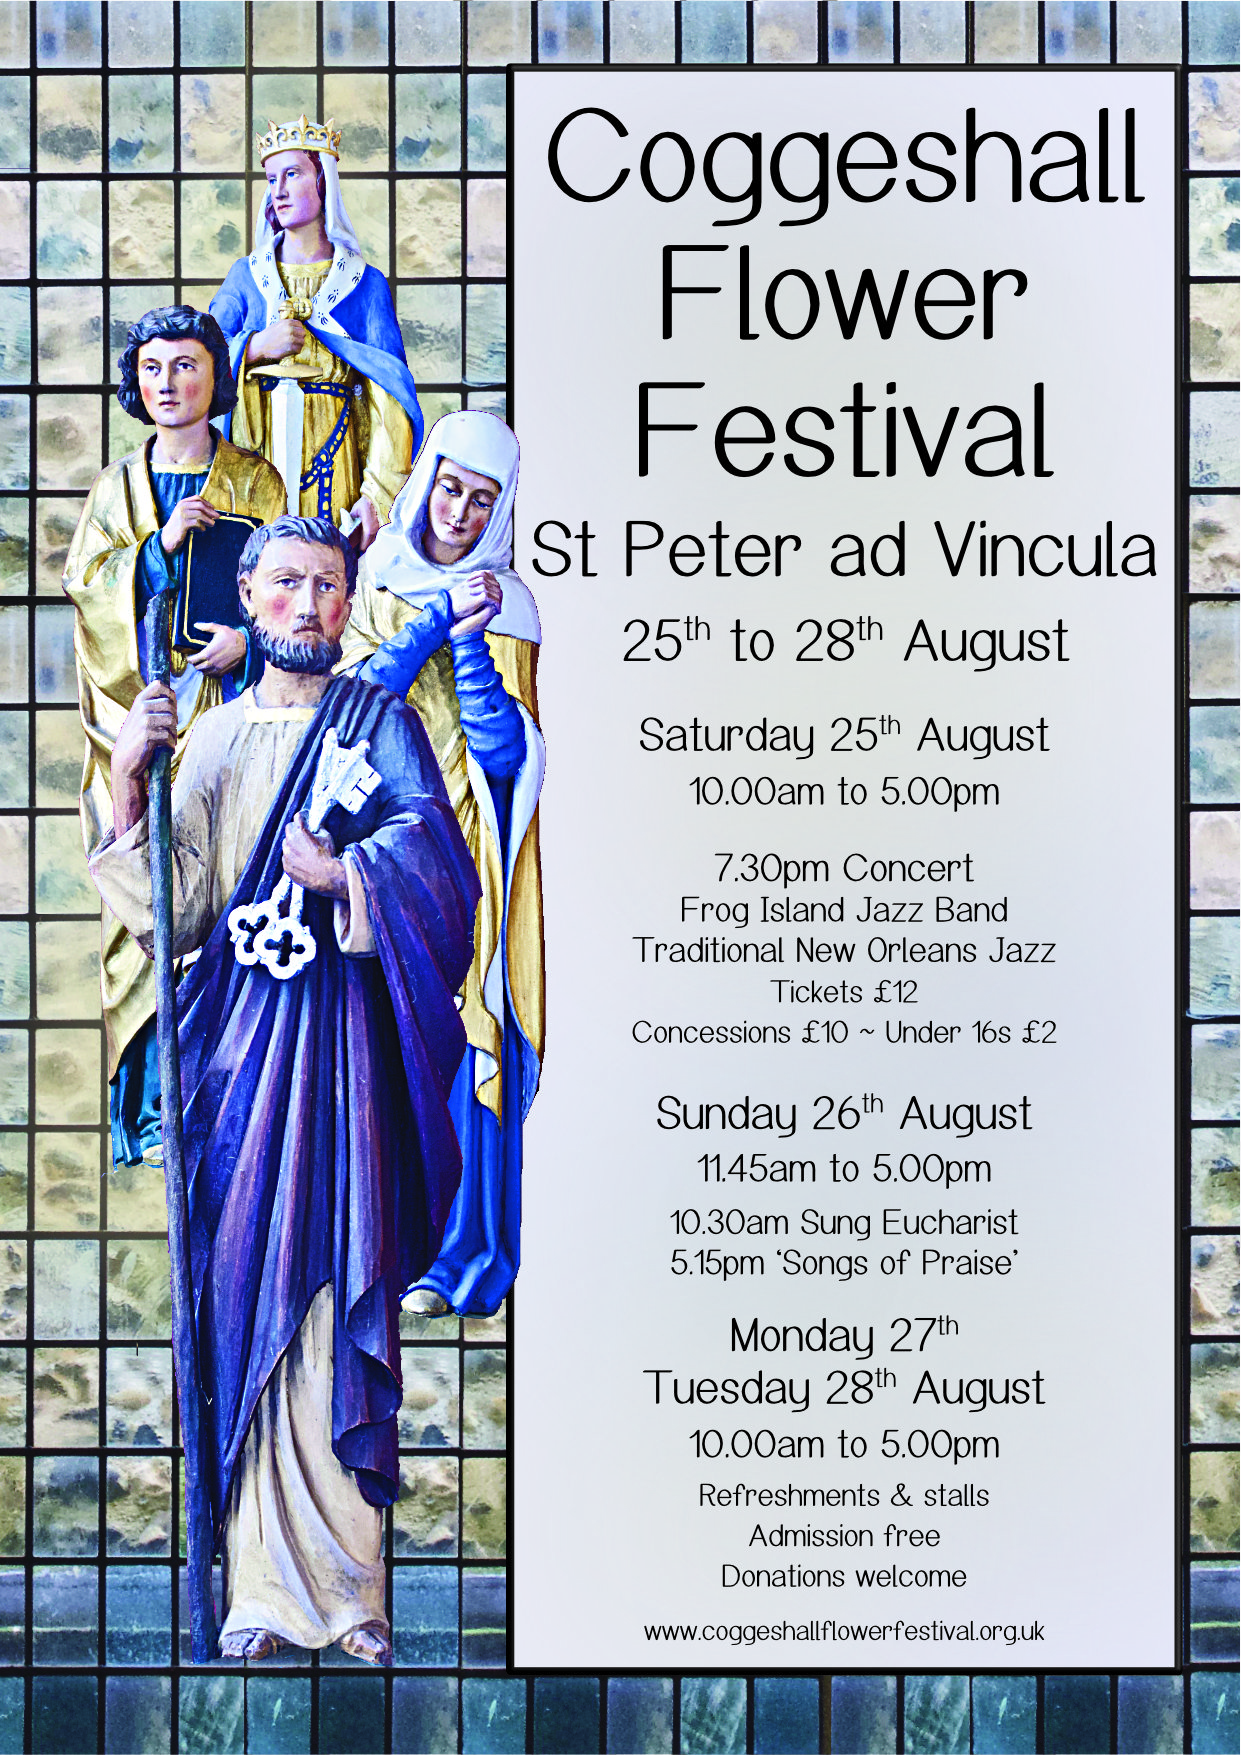 Coggeshall's 31st Annual Flower Festival